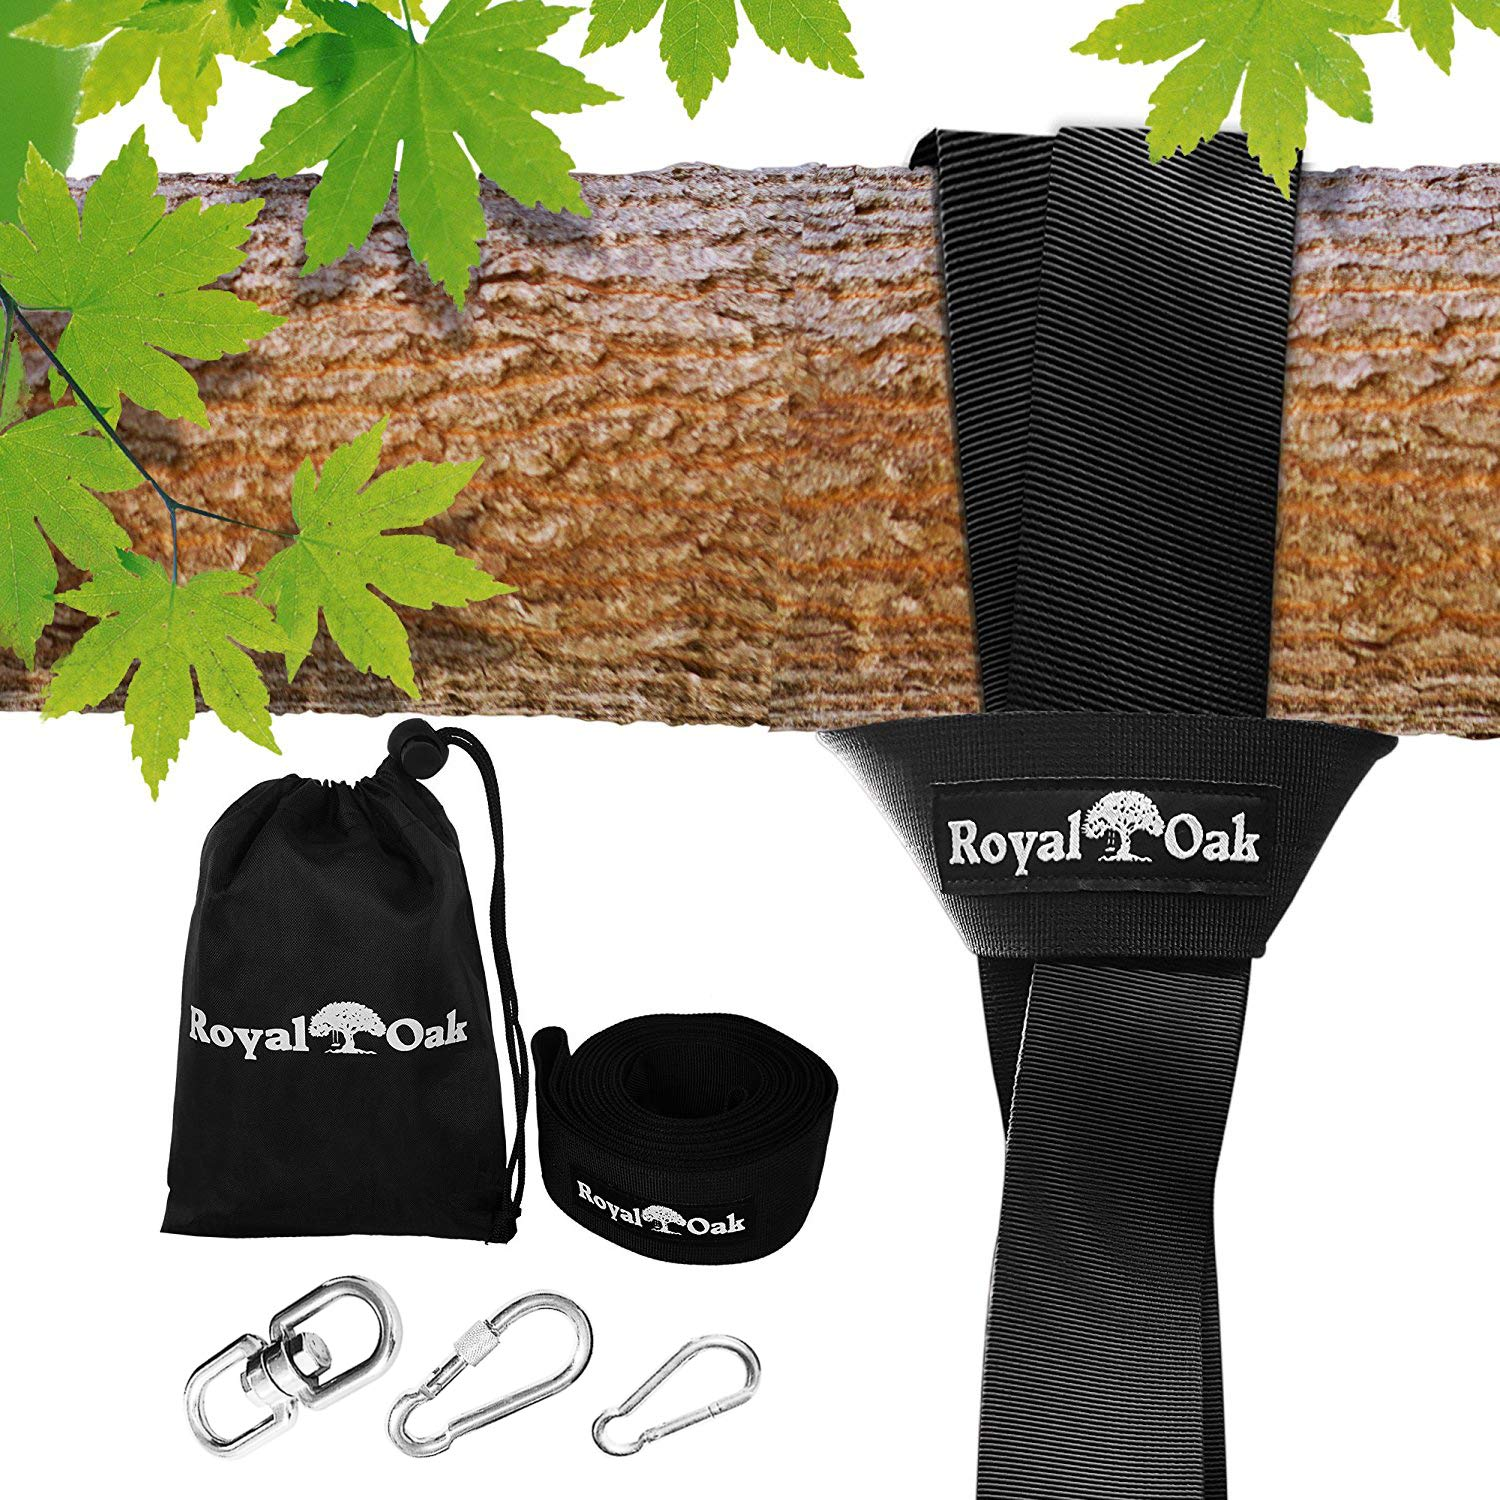 EASY HANG (8FT) TREE SWING STRAP X1 - Holds 2200lbs. - Heavy Duty Carabiner - Bonus Spinner - Perfect for Tire and Saucer Swings - 100% Waterproof - Easy Picture Instructions - Carry Bag Included!